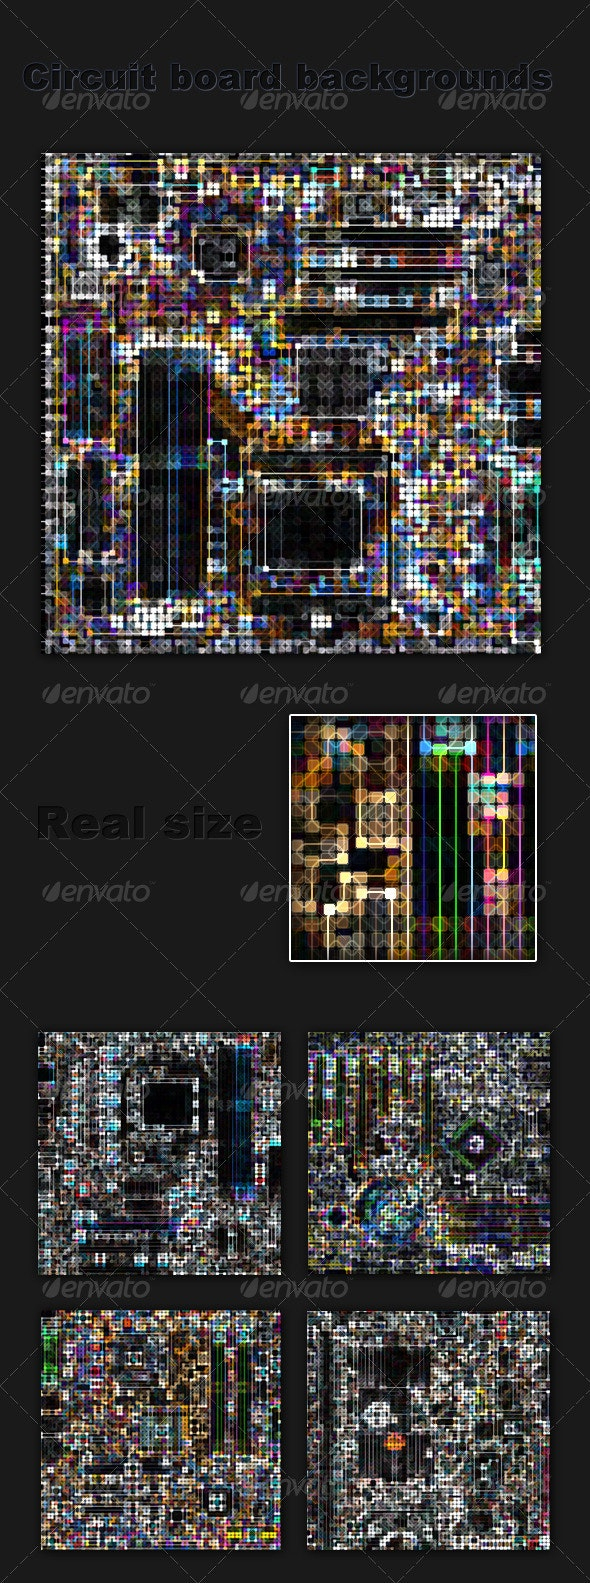 5 Artistic Circuit Board Textures Collection - Patterns Backgrounds